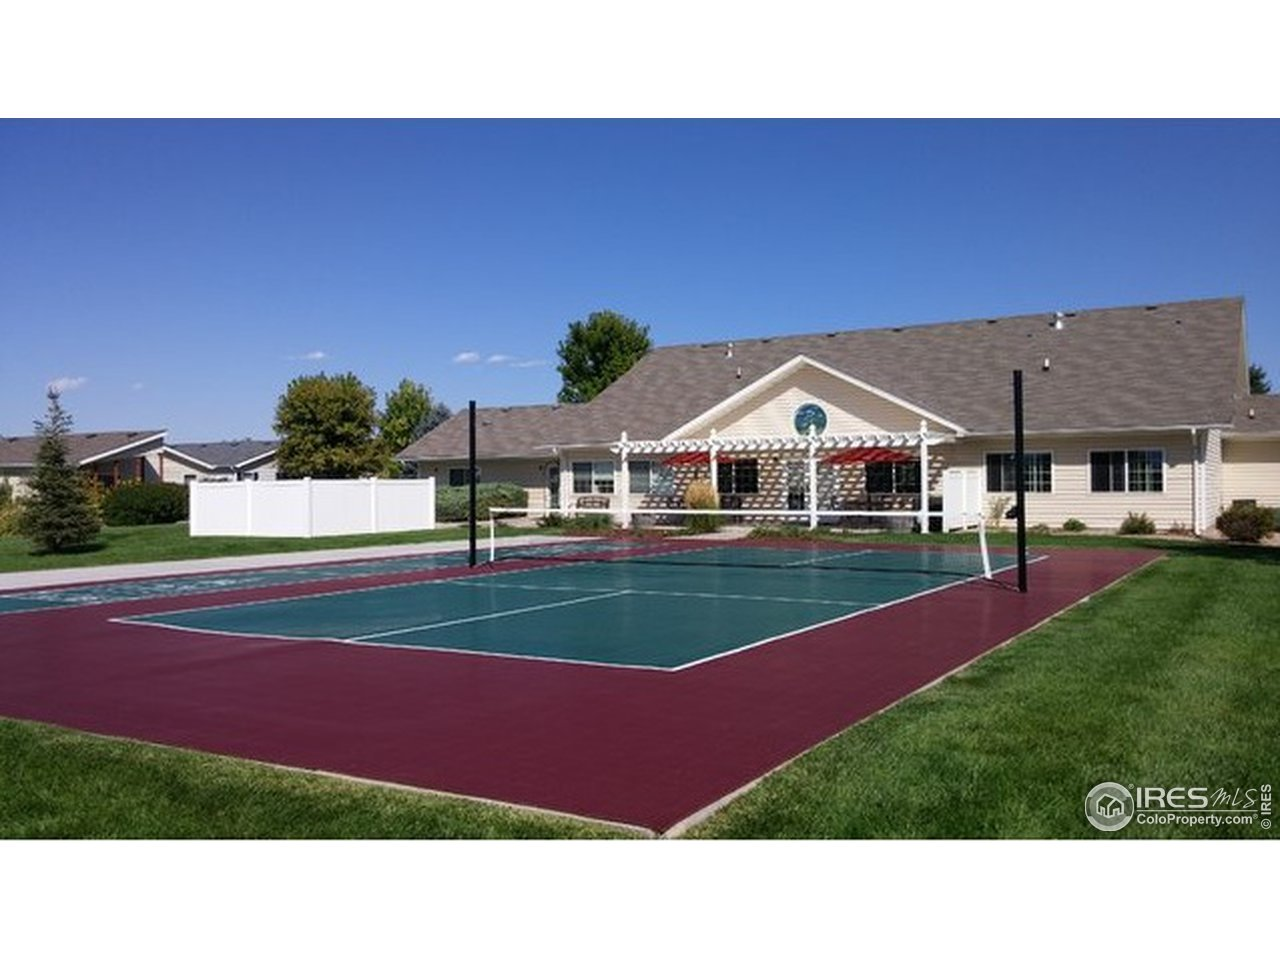 Clubhouse Pickleball Courts